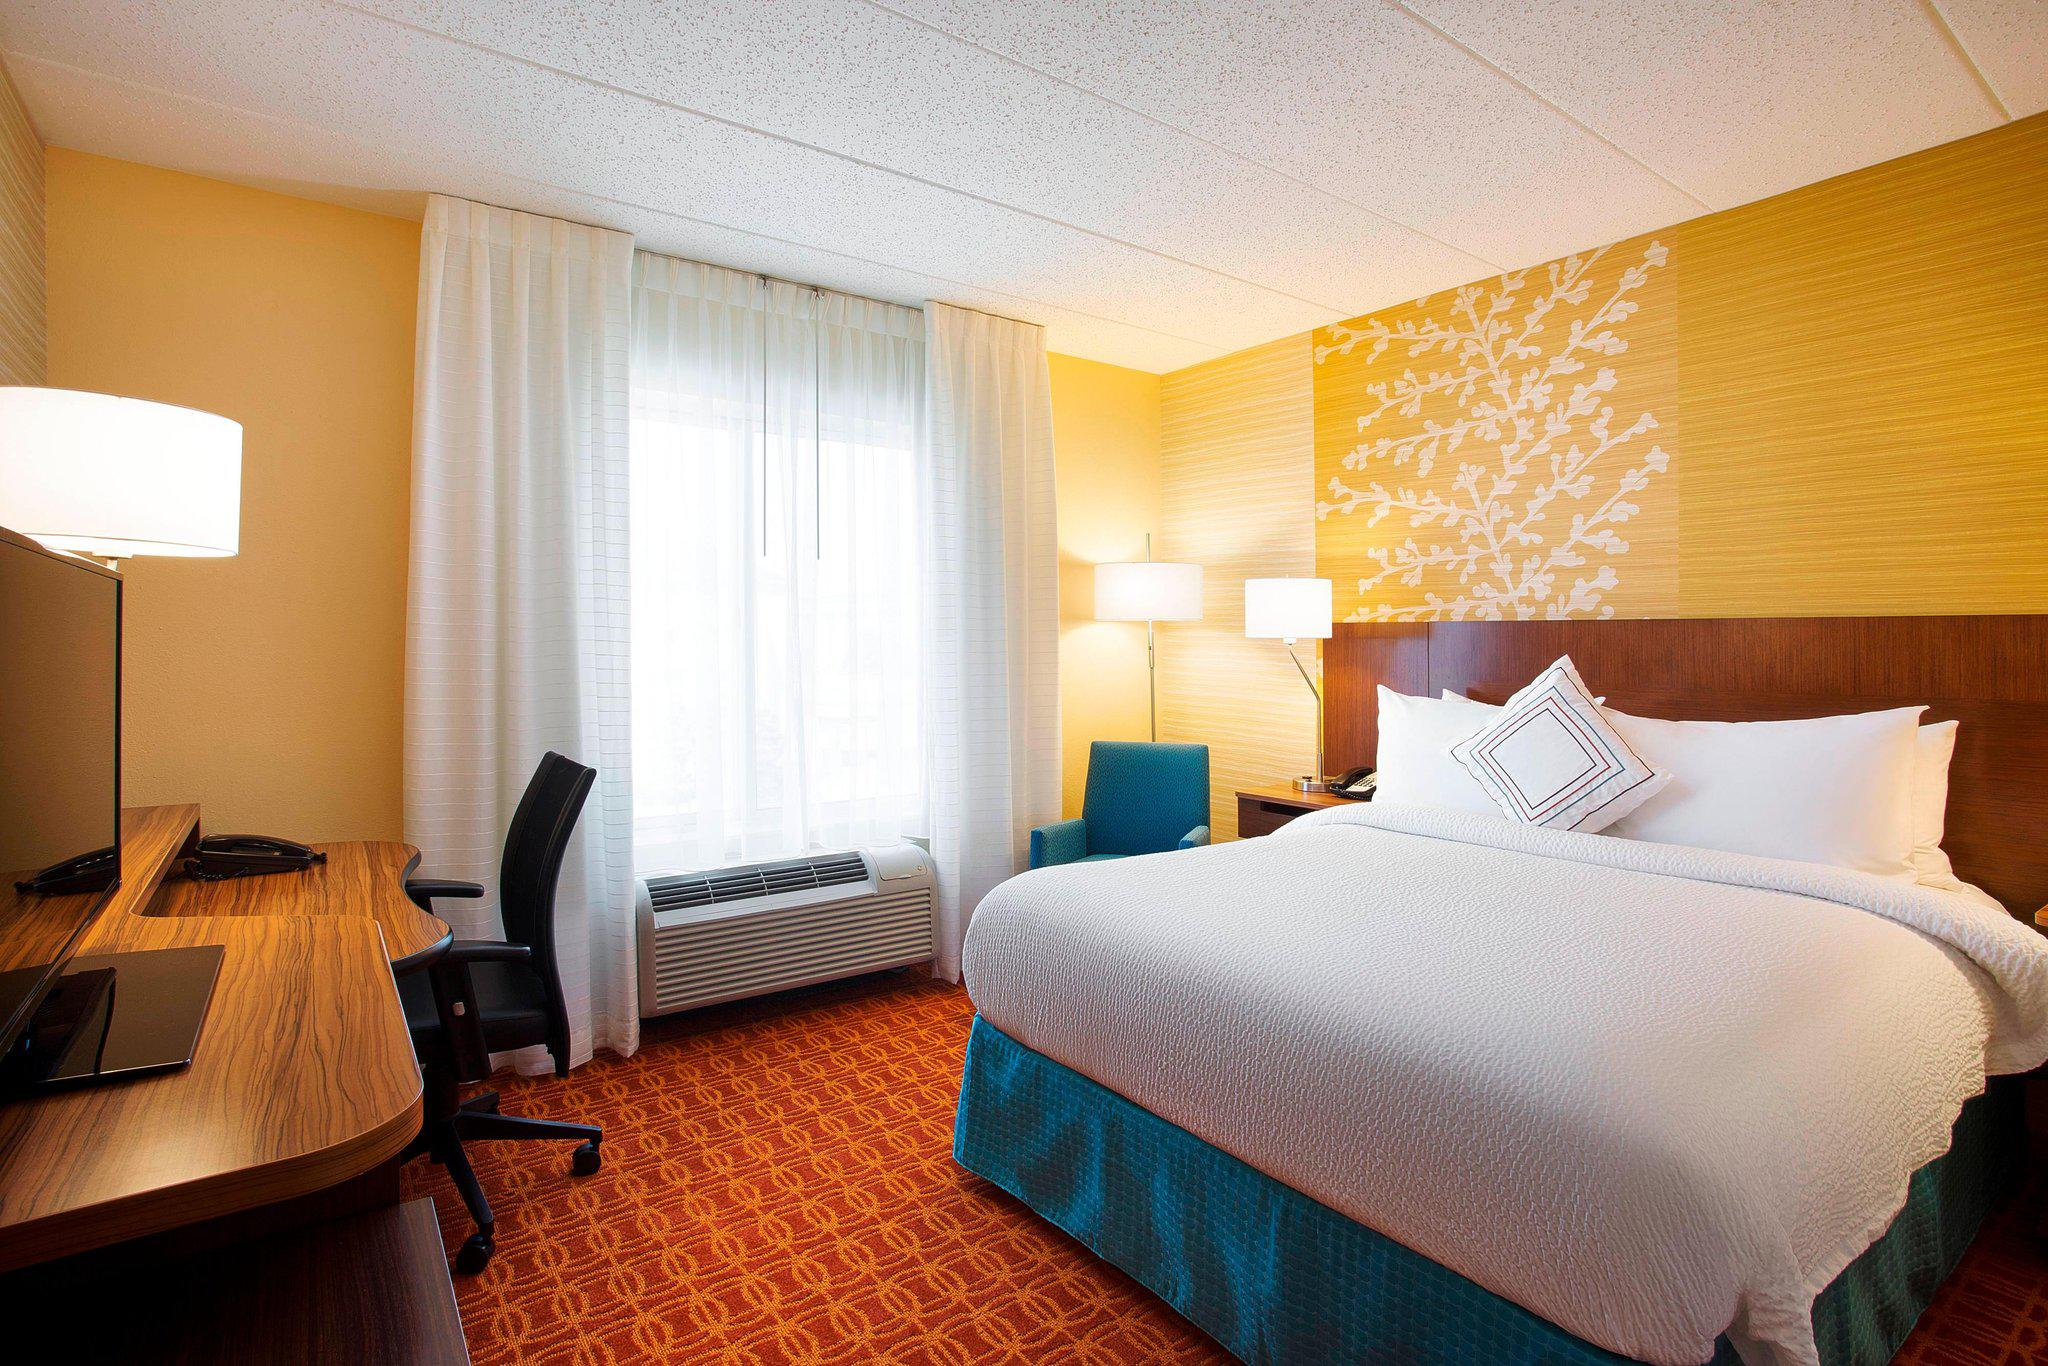 Fairfield Inn & Suites by Marriott Chicago Midway Airport